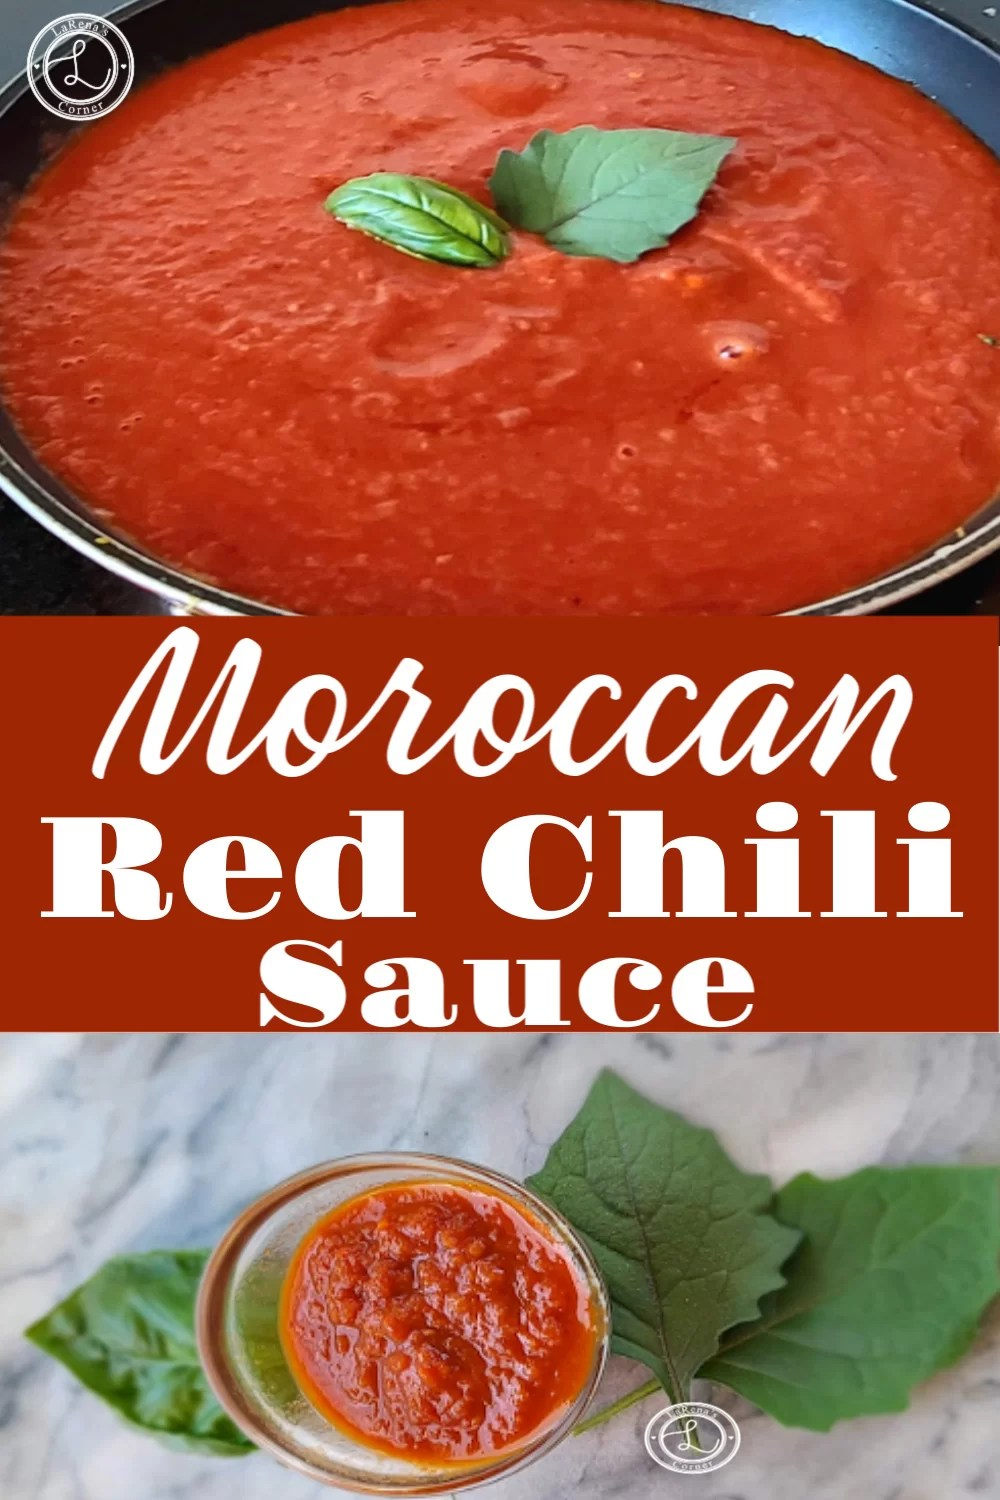 2 pictures. One of the Moroccan Red Chili Sauce in a pan. One picture of the sauce in a bowl.